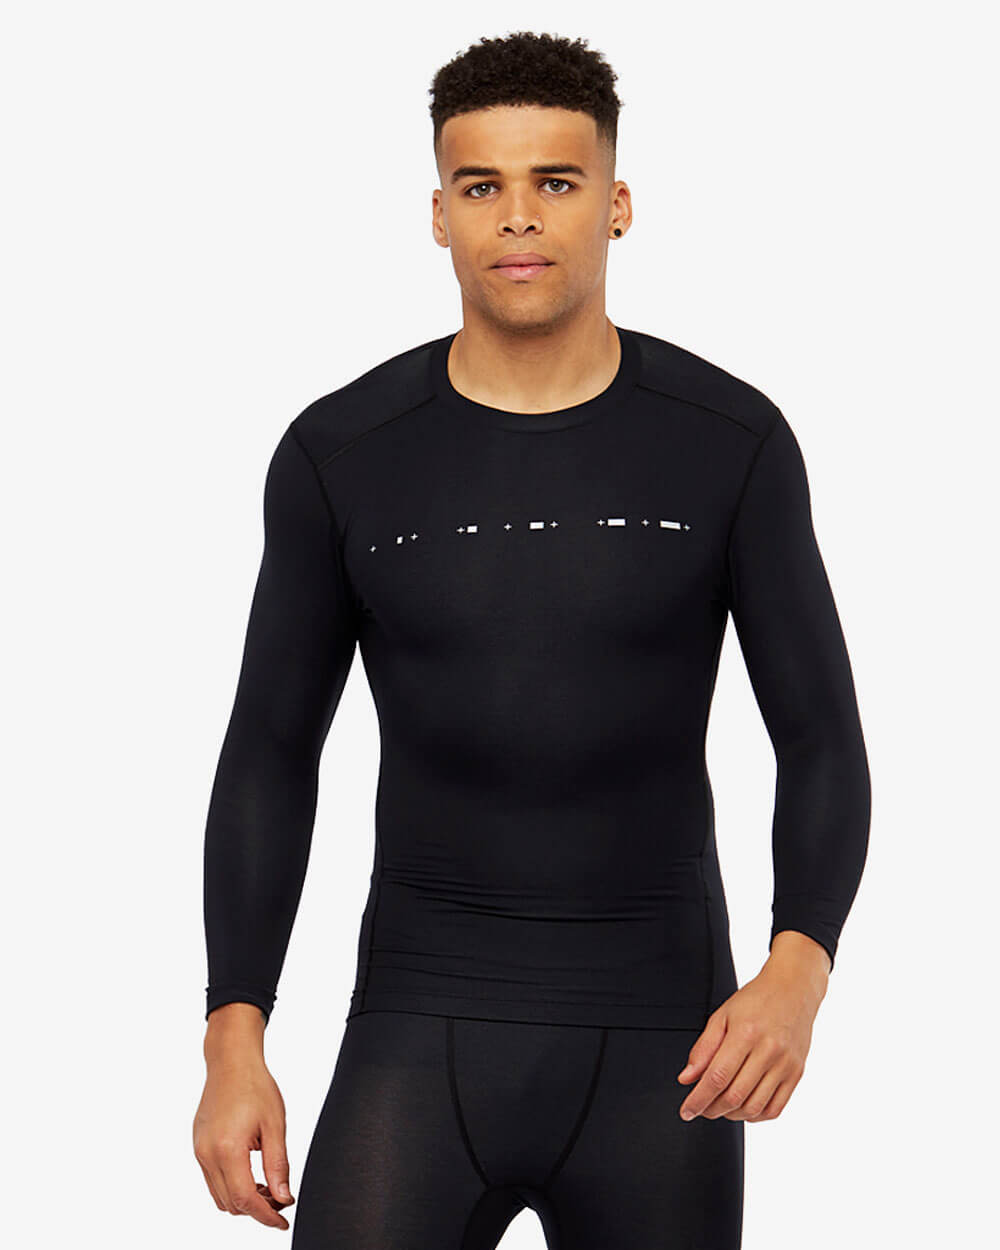 Athlete Recovery smart clothing by Under Armour